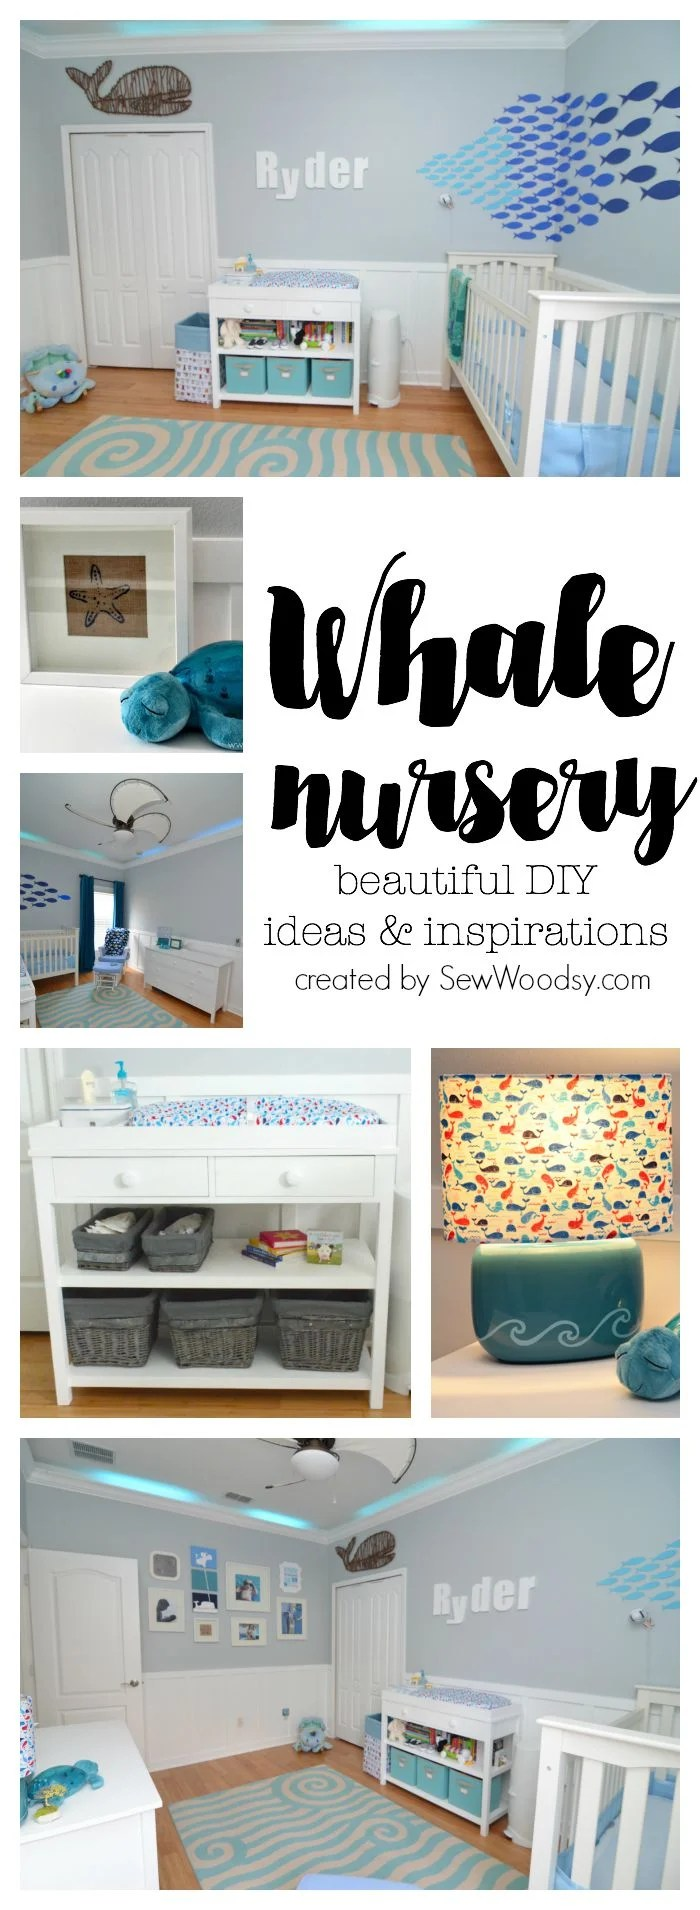 whale nursery - beautiful diy ideas and inspirations